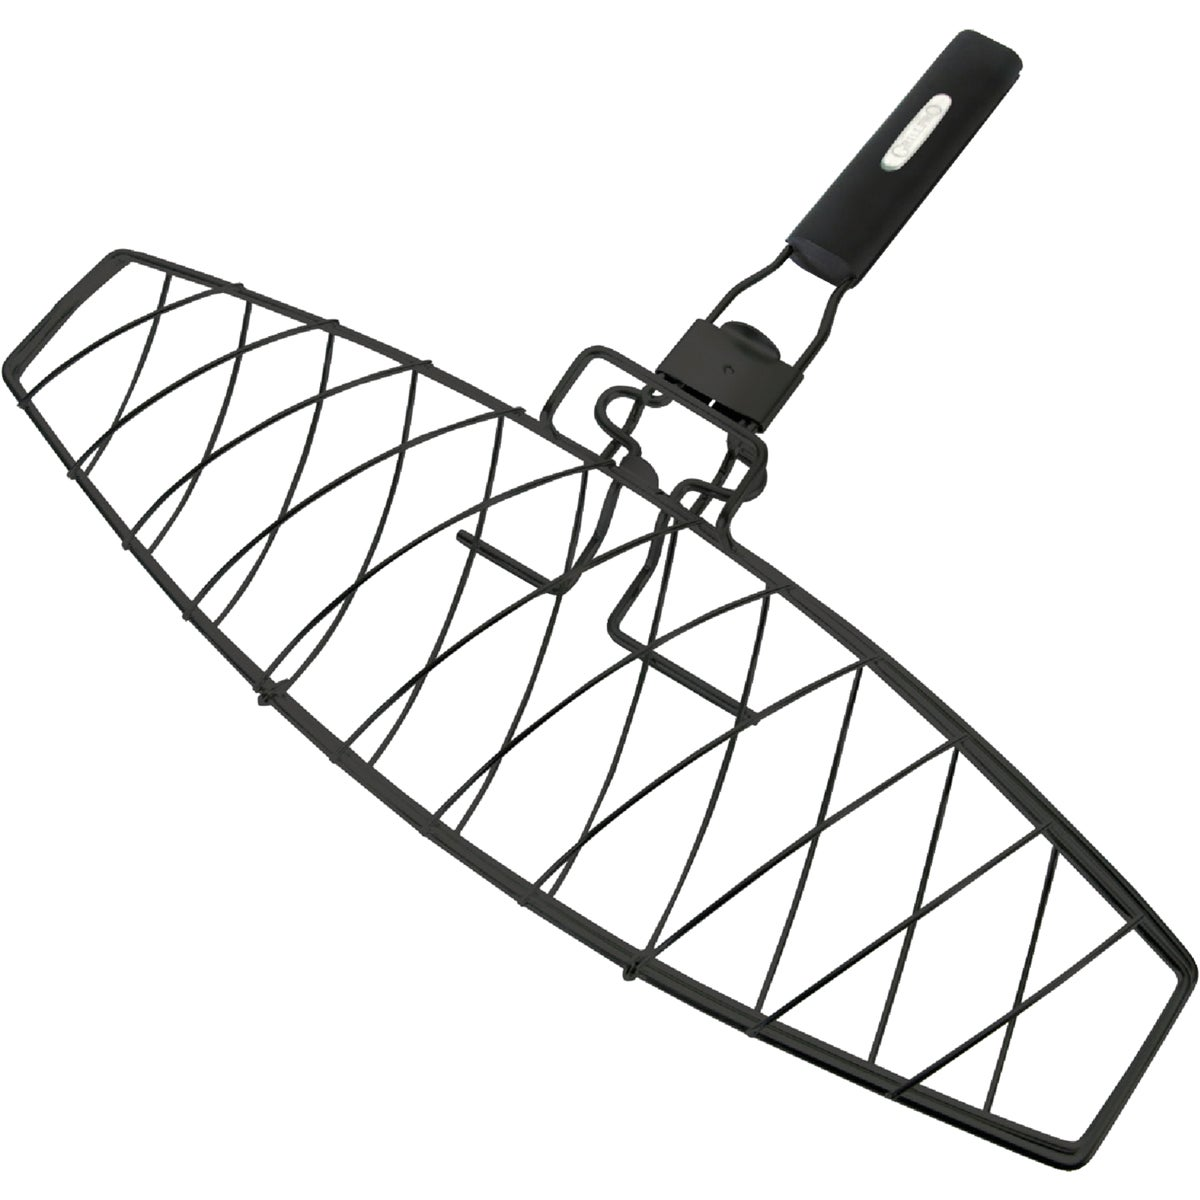 BASKET FISH NON-STICK